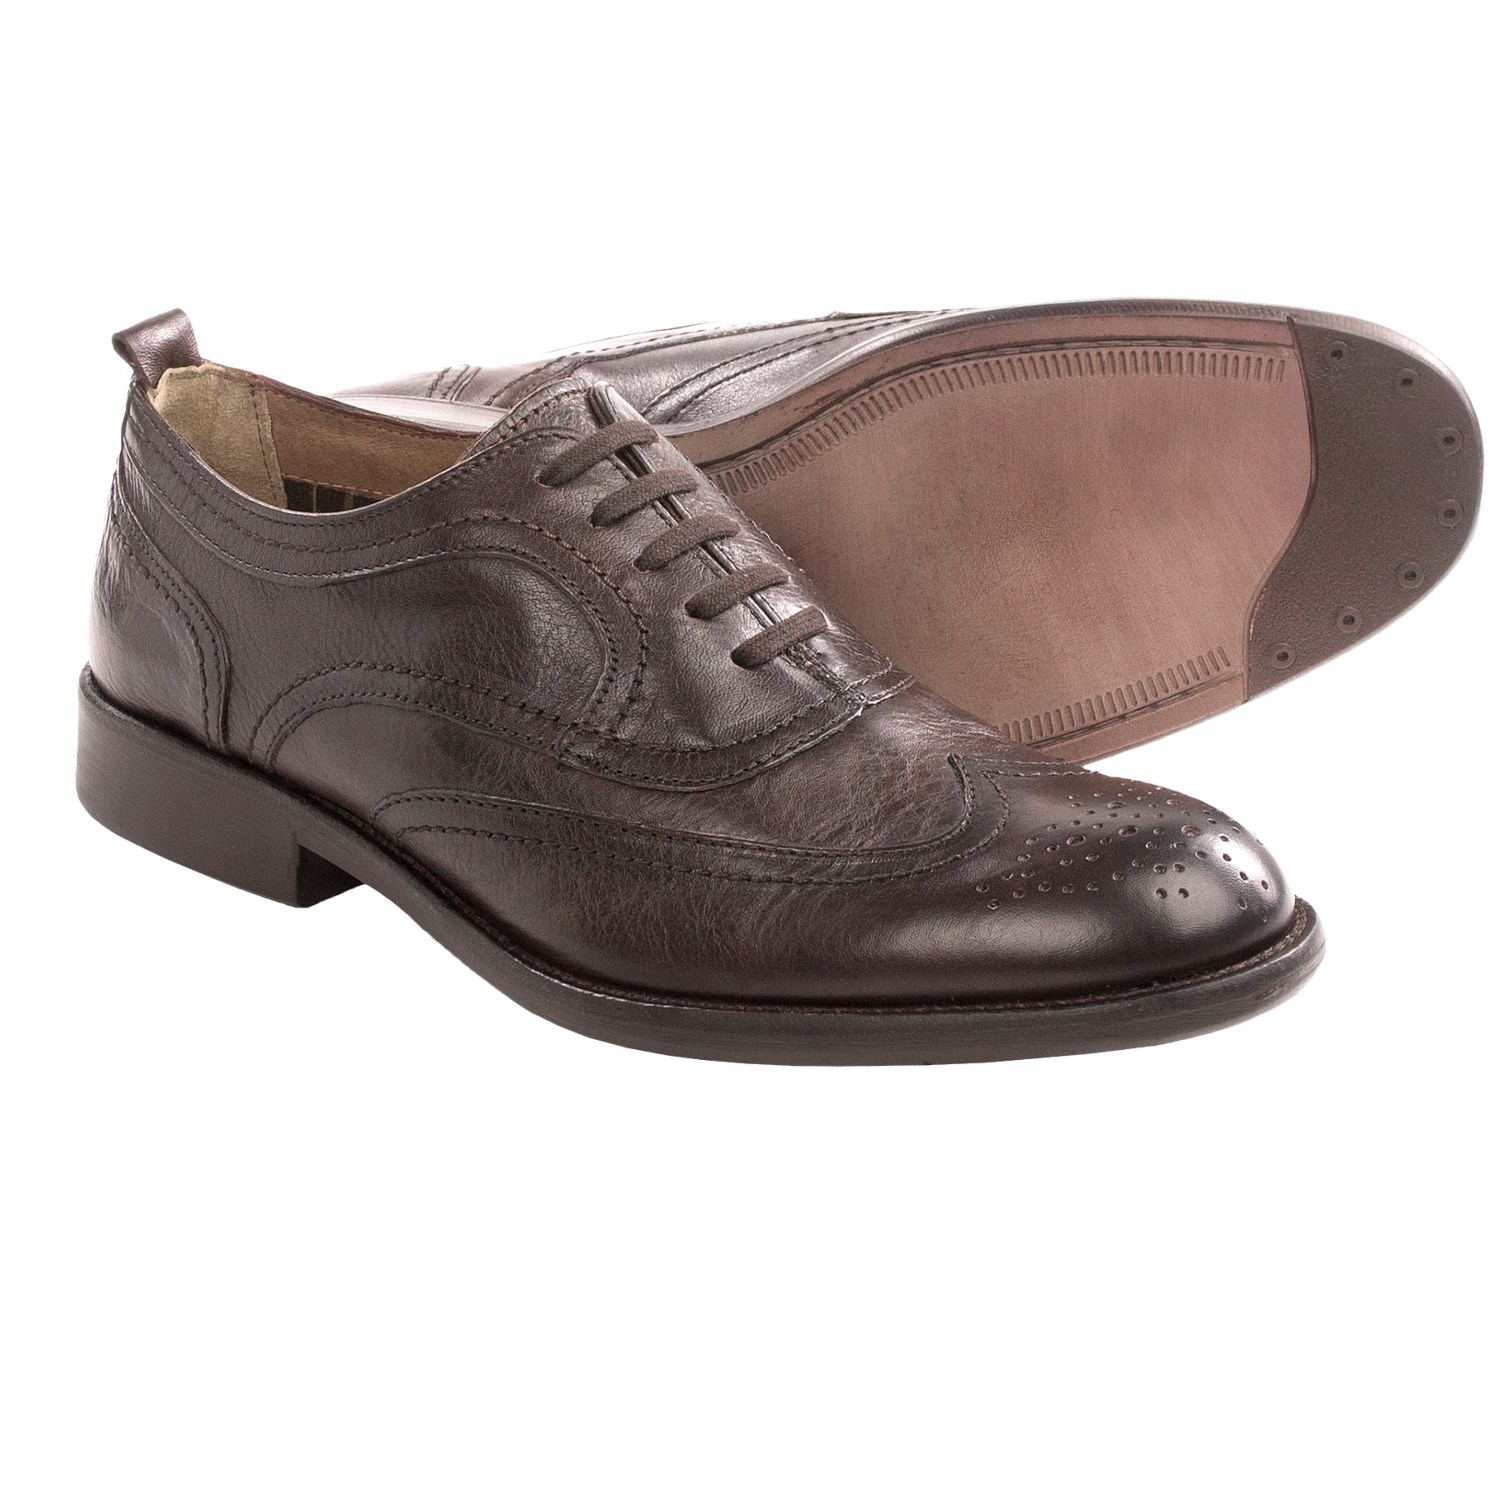 Johnston & Murphy Decatur Wingtip Shoes (For Men) in Dark Brown